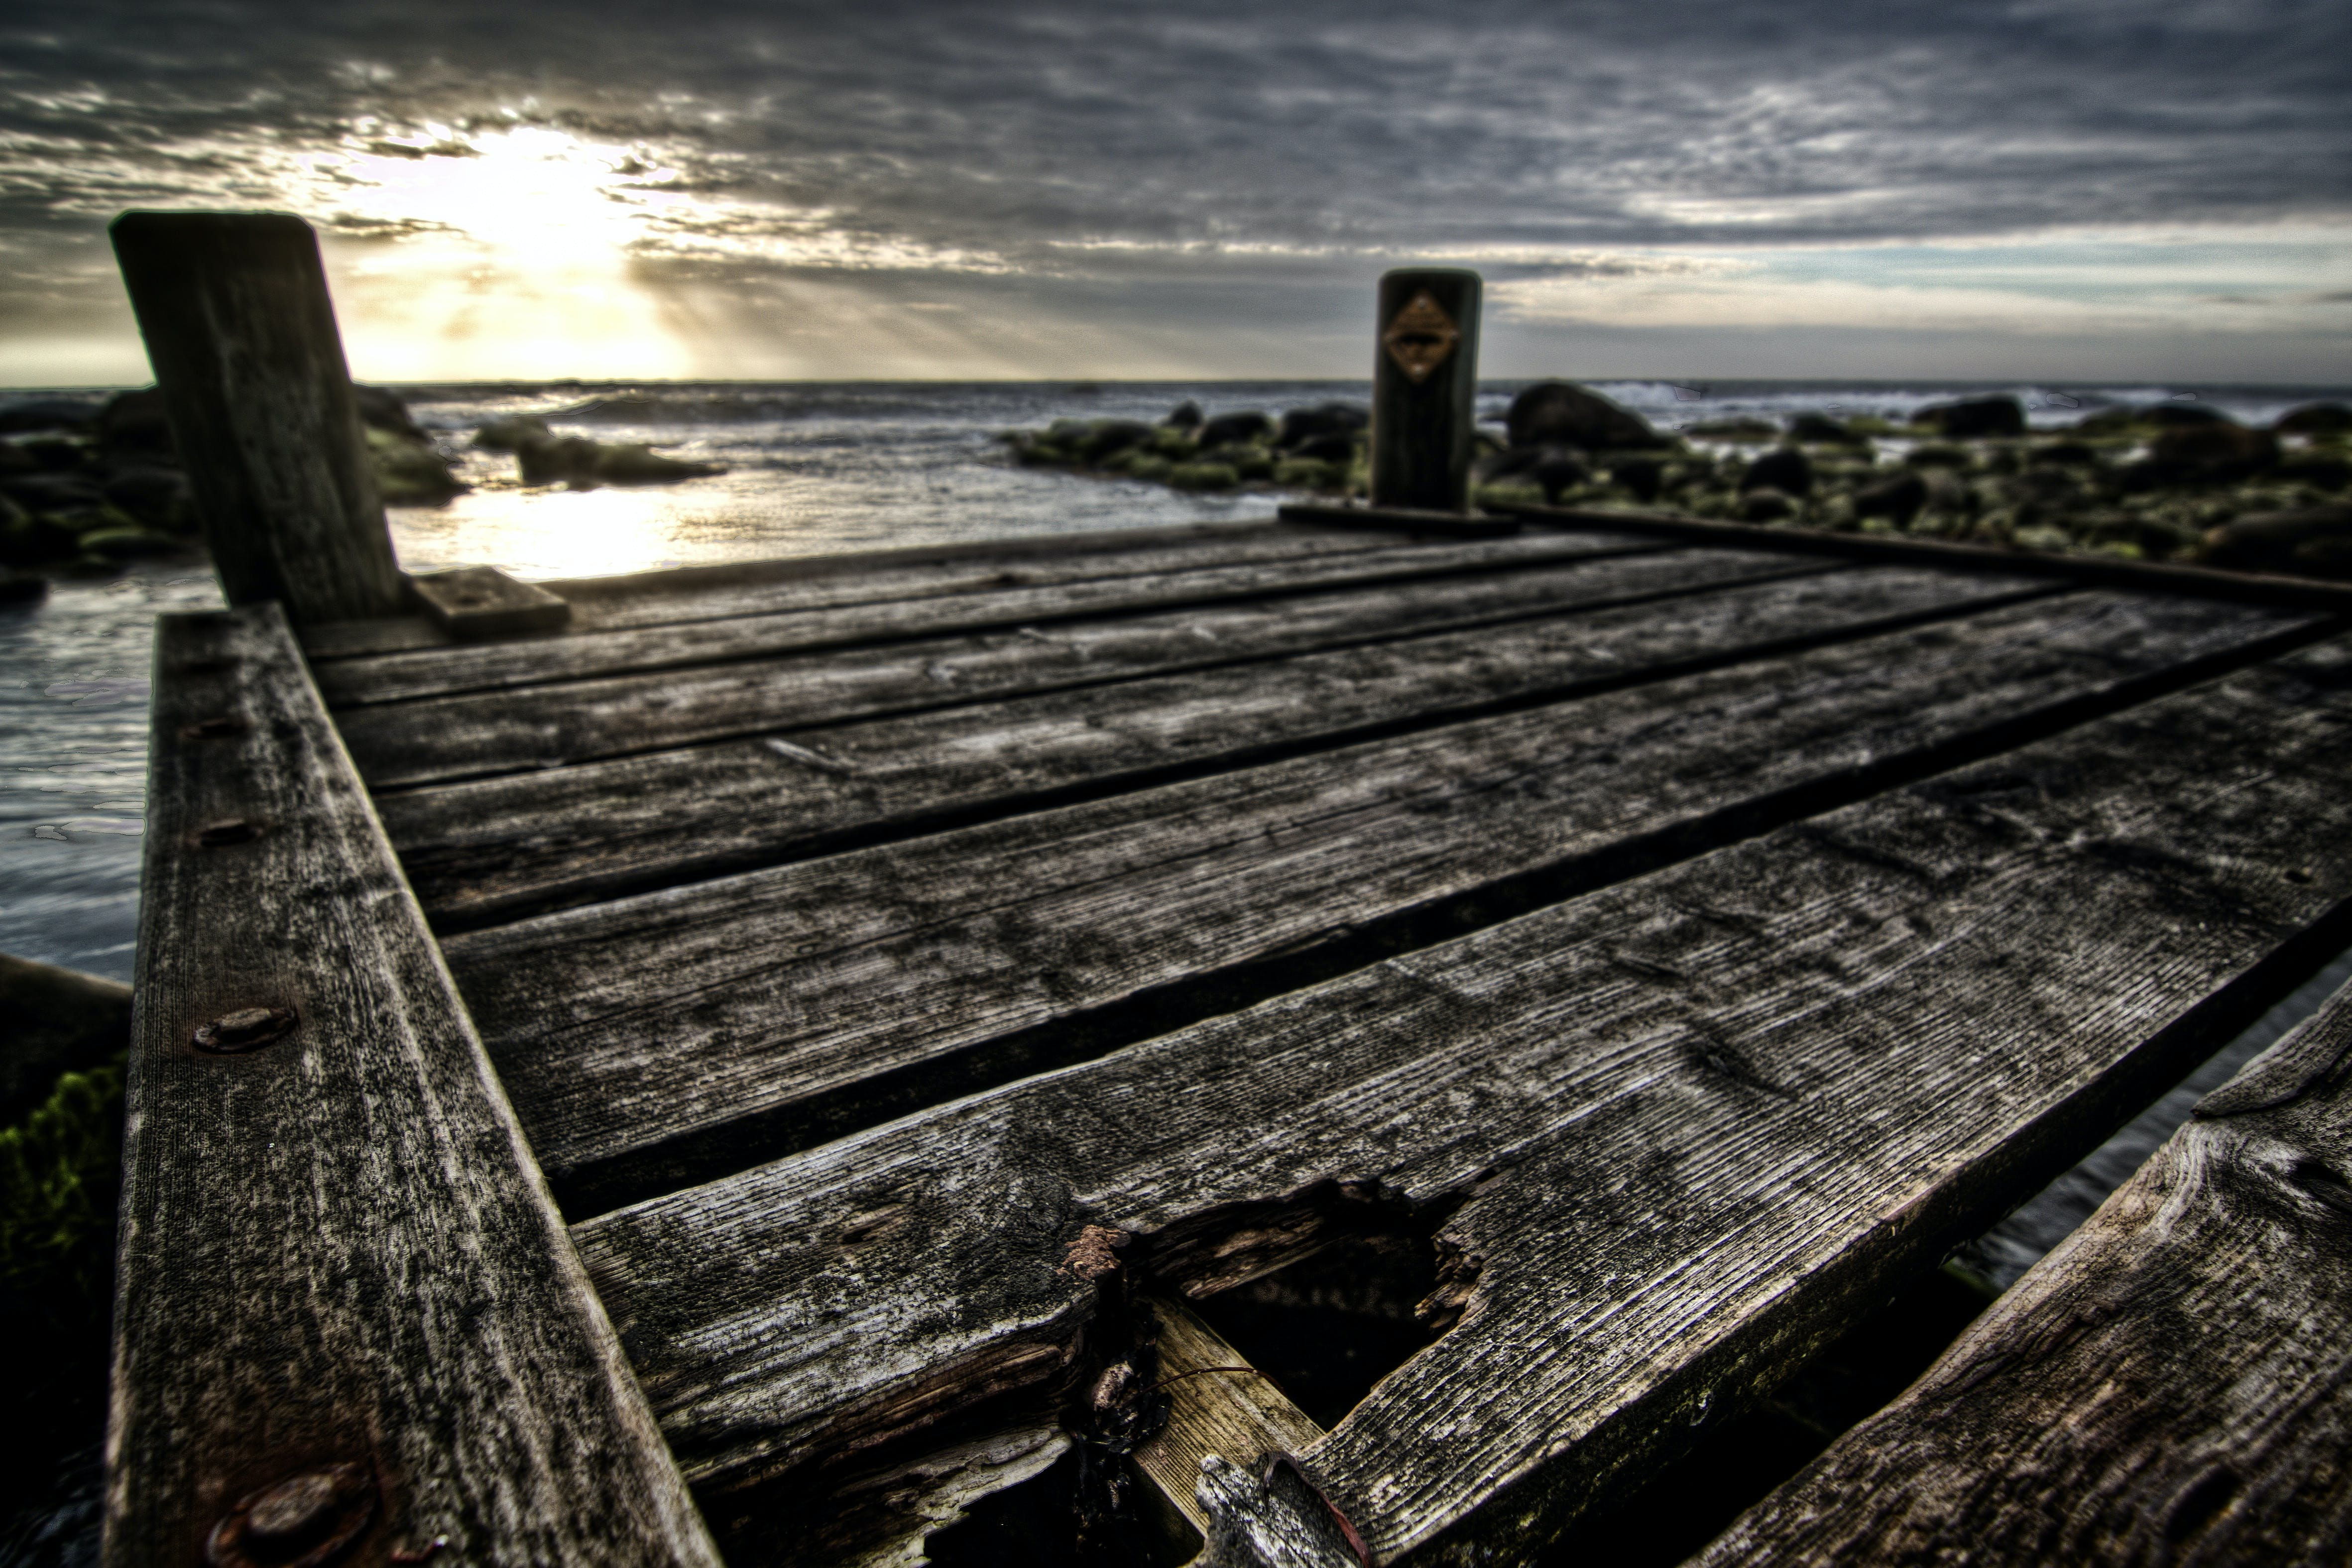 Free stock photo of Baltic Sea, clouds, evening sun, hdr